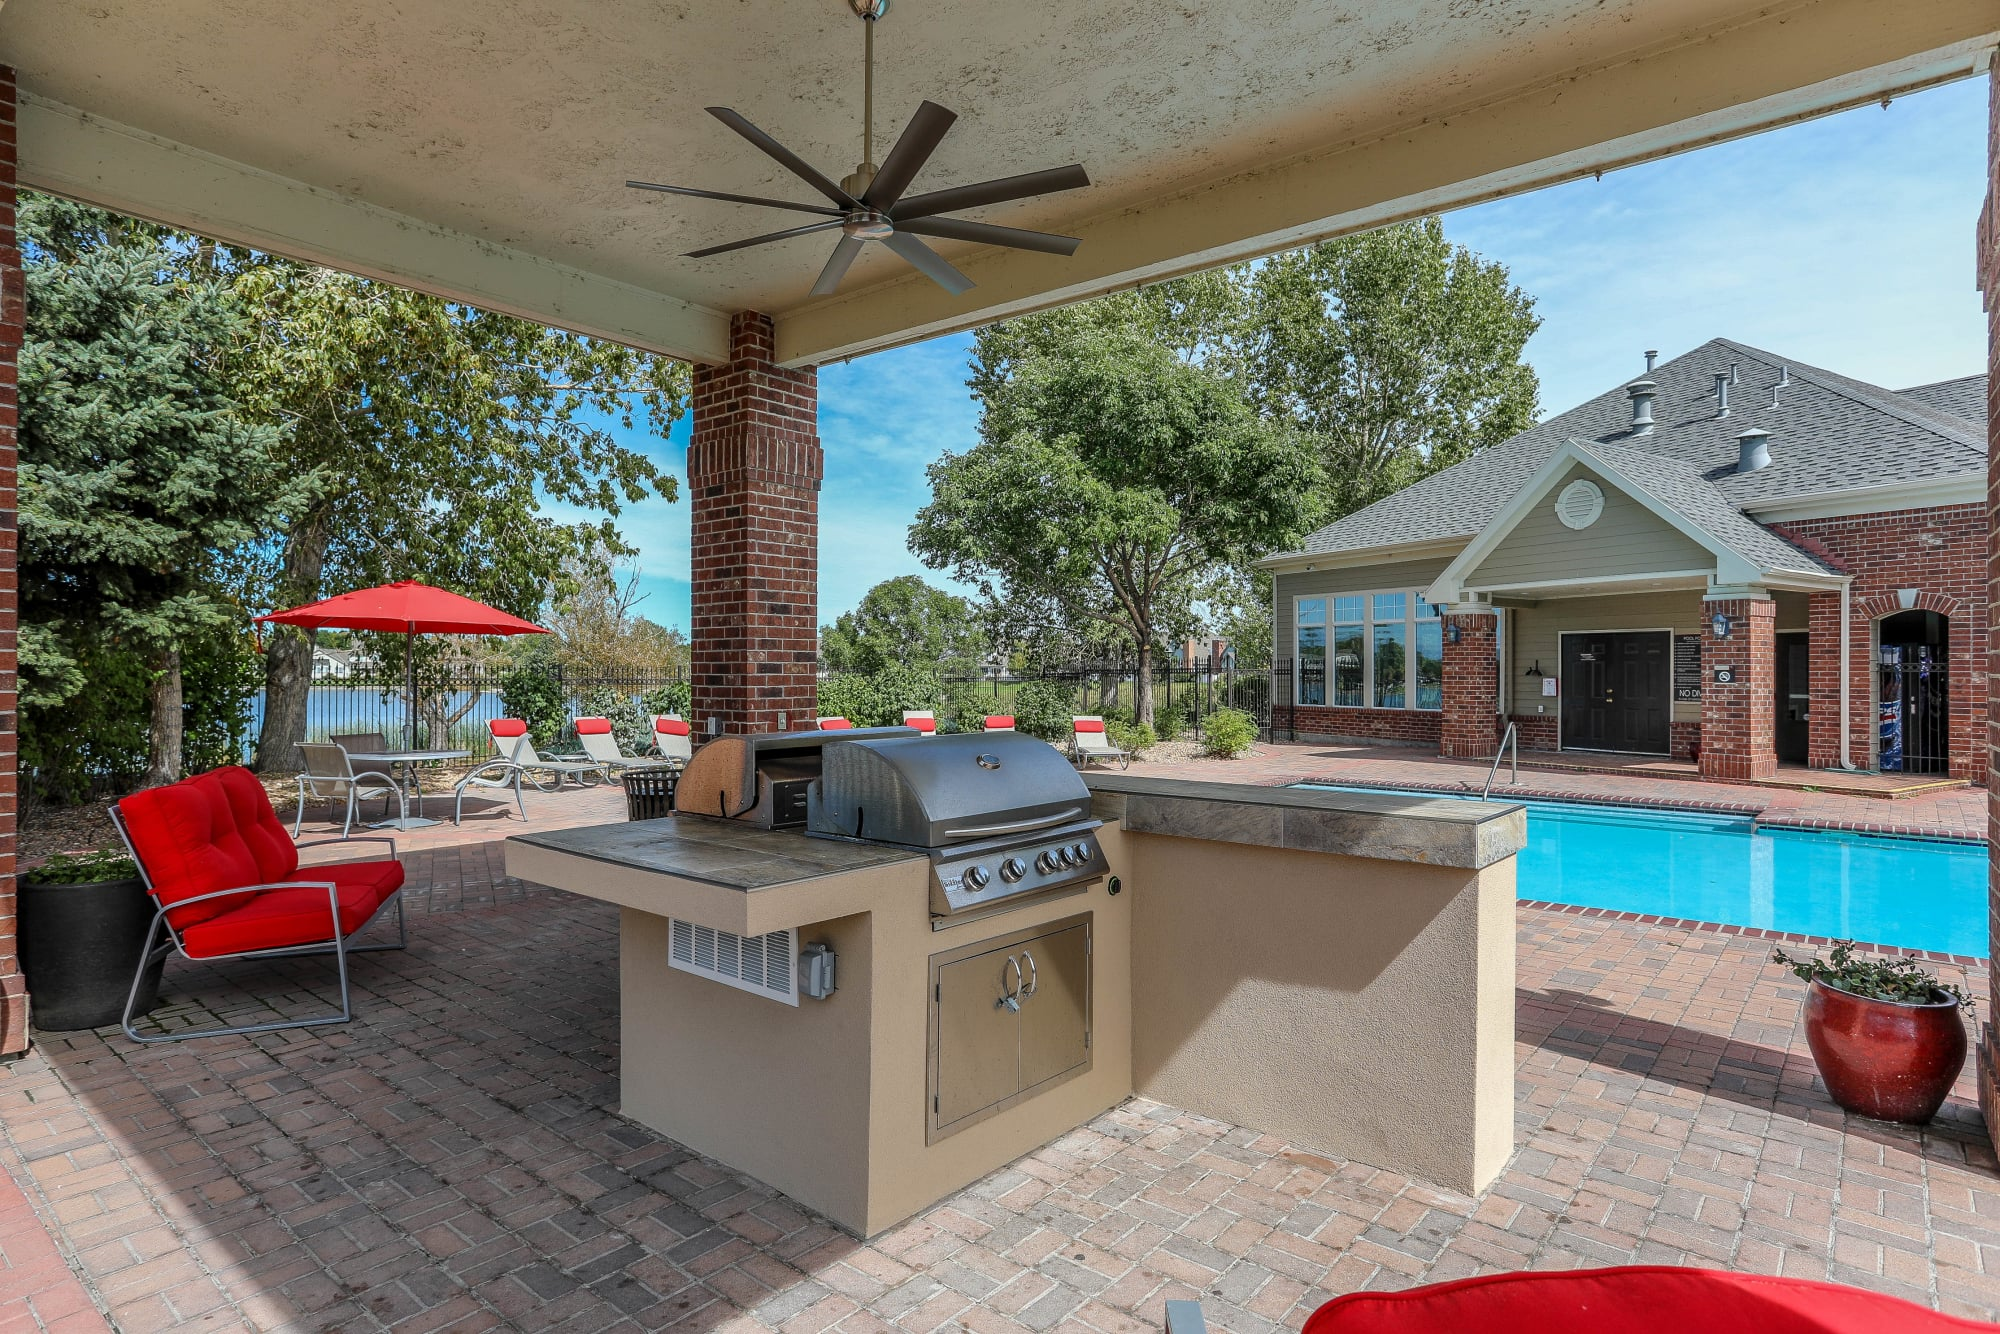 Poolside covered BBQ area with bar top seating at Promenade at Hunter's Glen Apartments in Thornton, Colorado